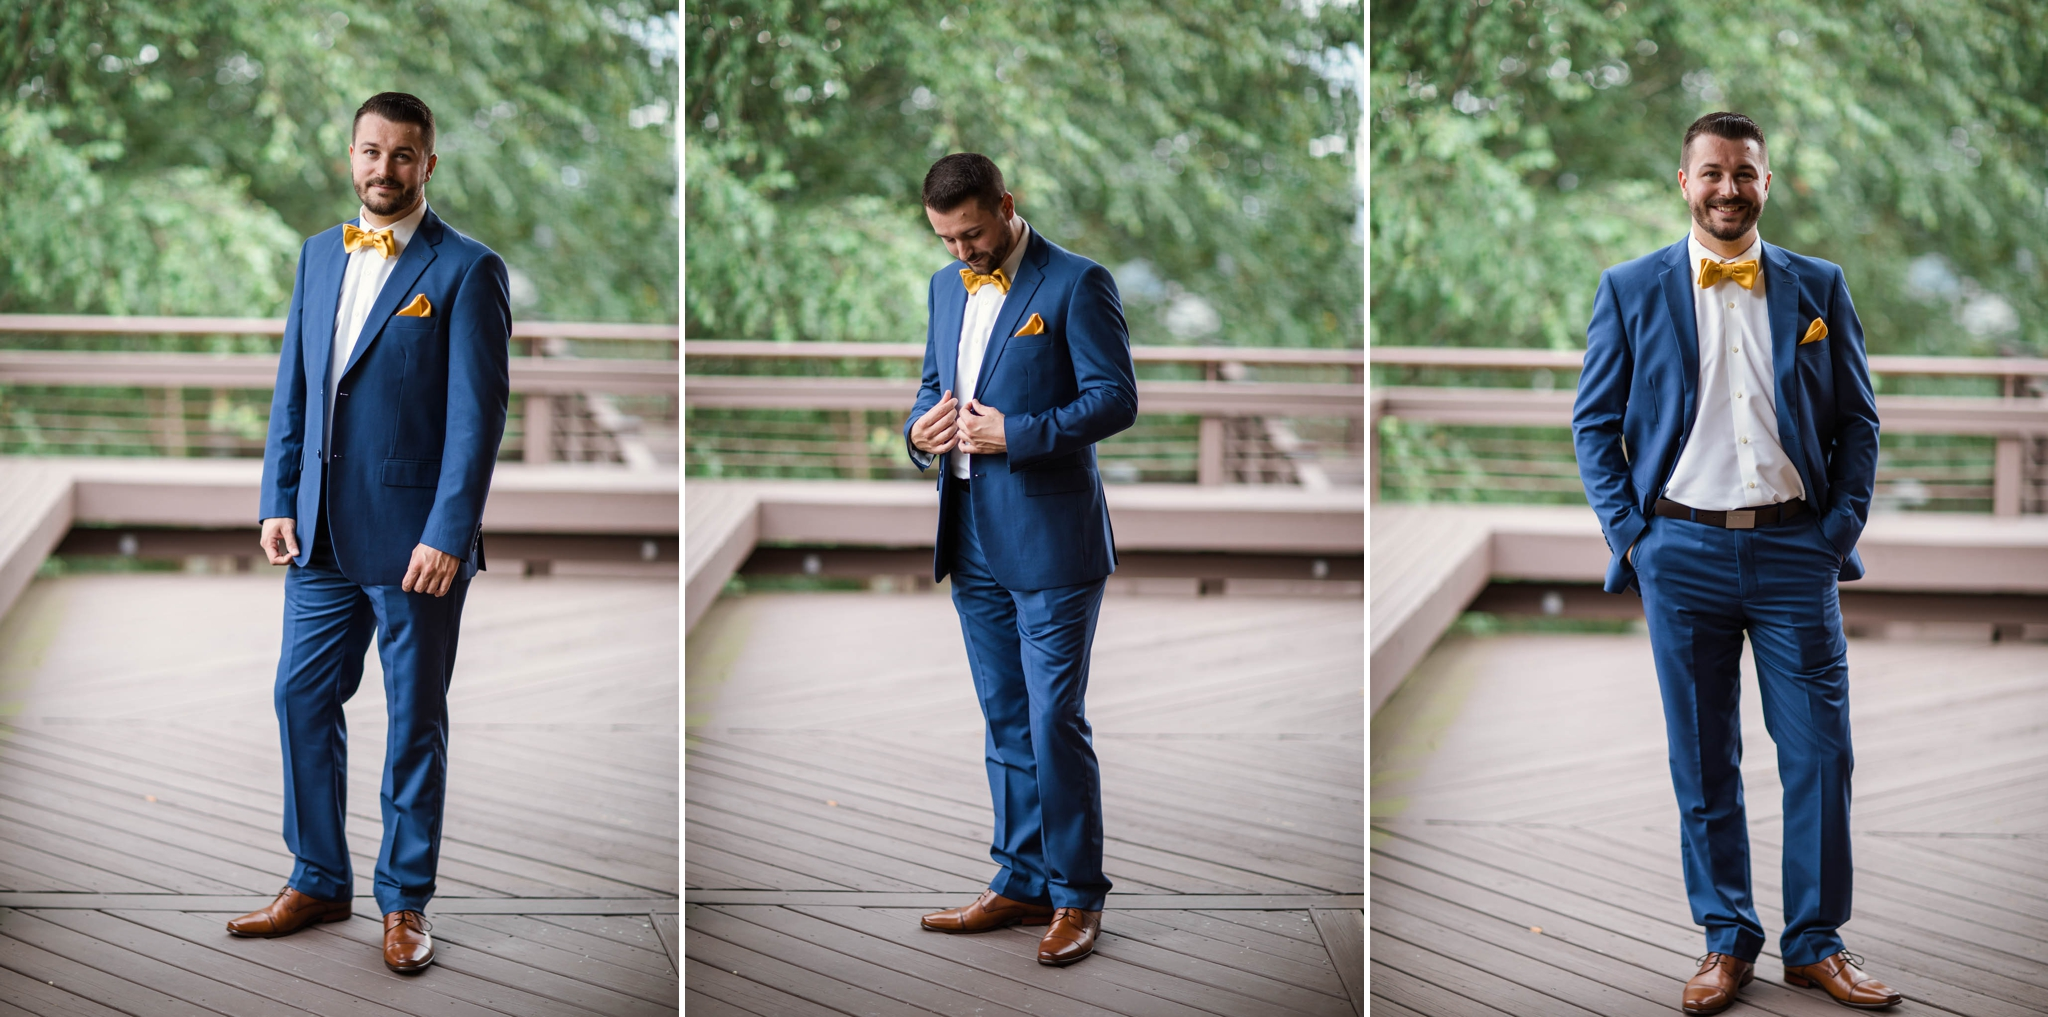 Portraits of the groom - Meredith + Jason - The Crest Center and Pavilion in Asheville, NC - Raleigh Wedding Photographer